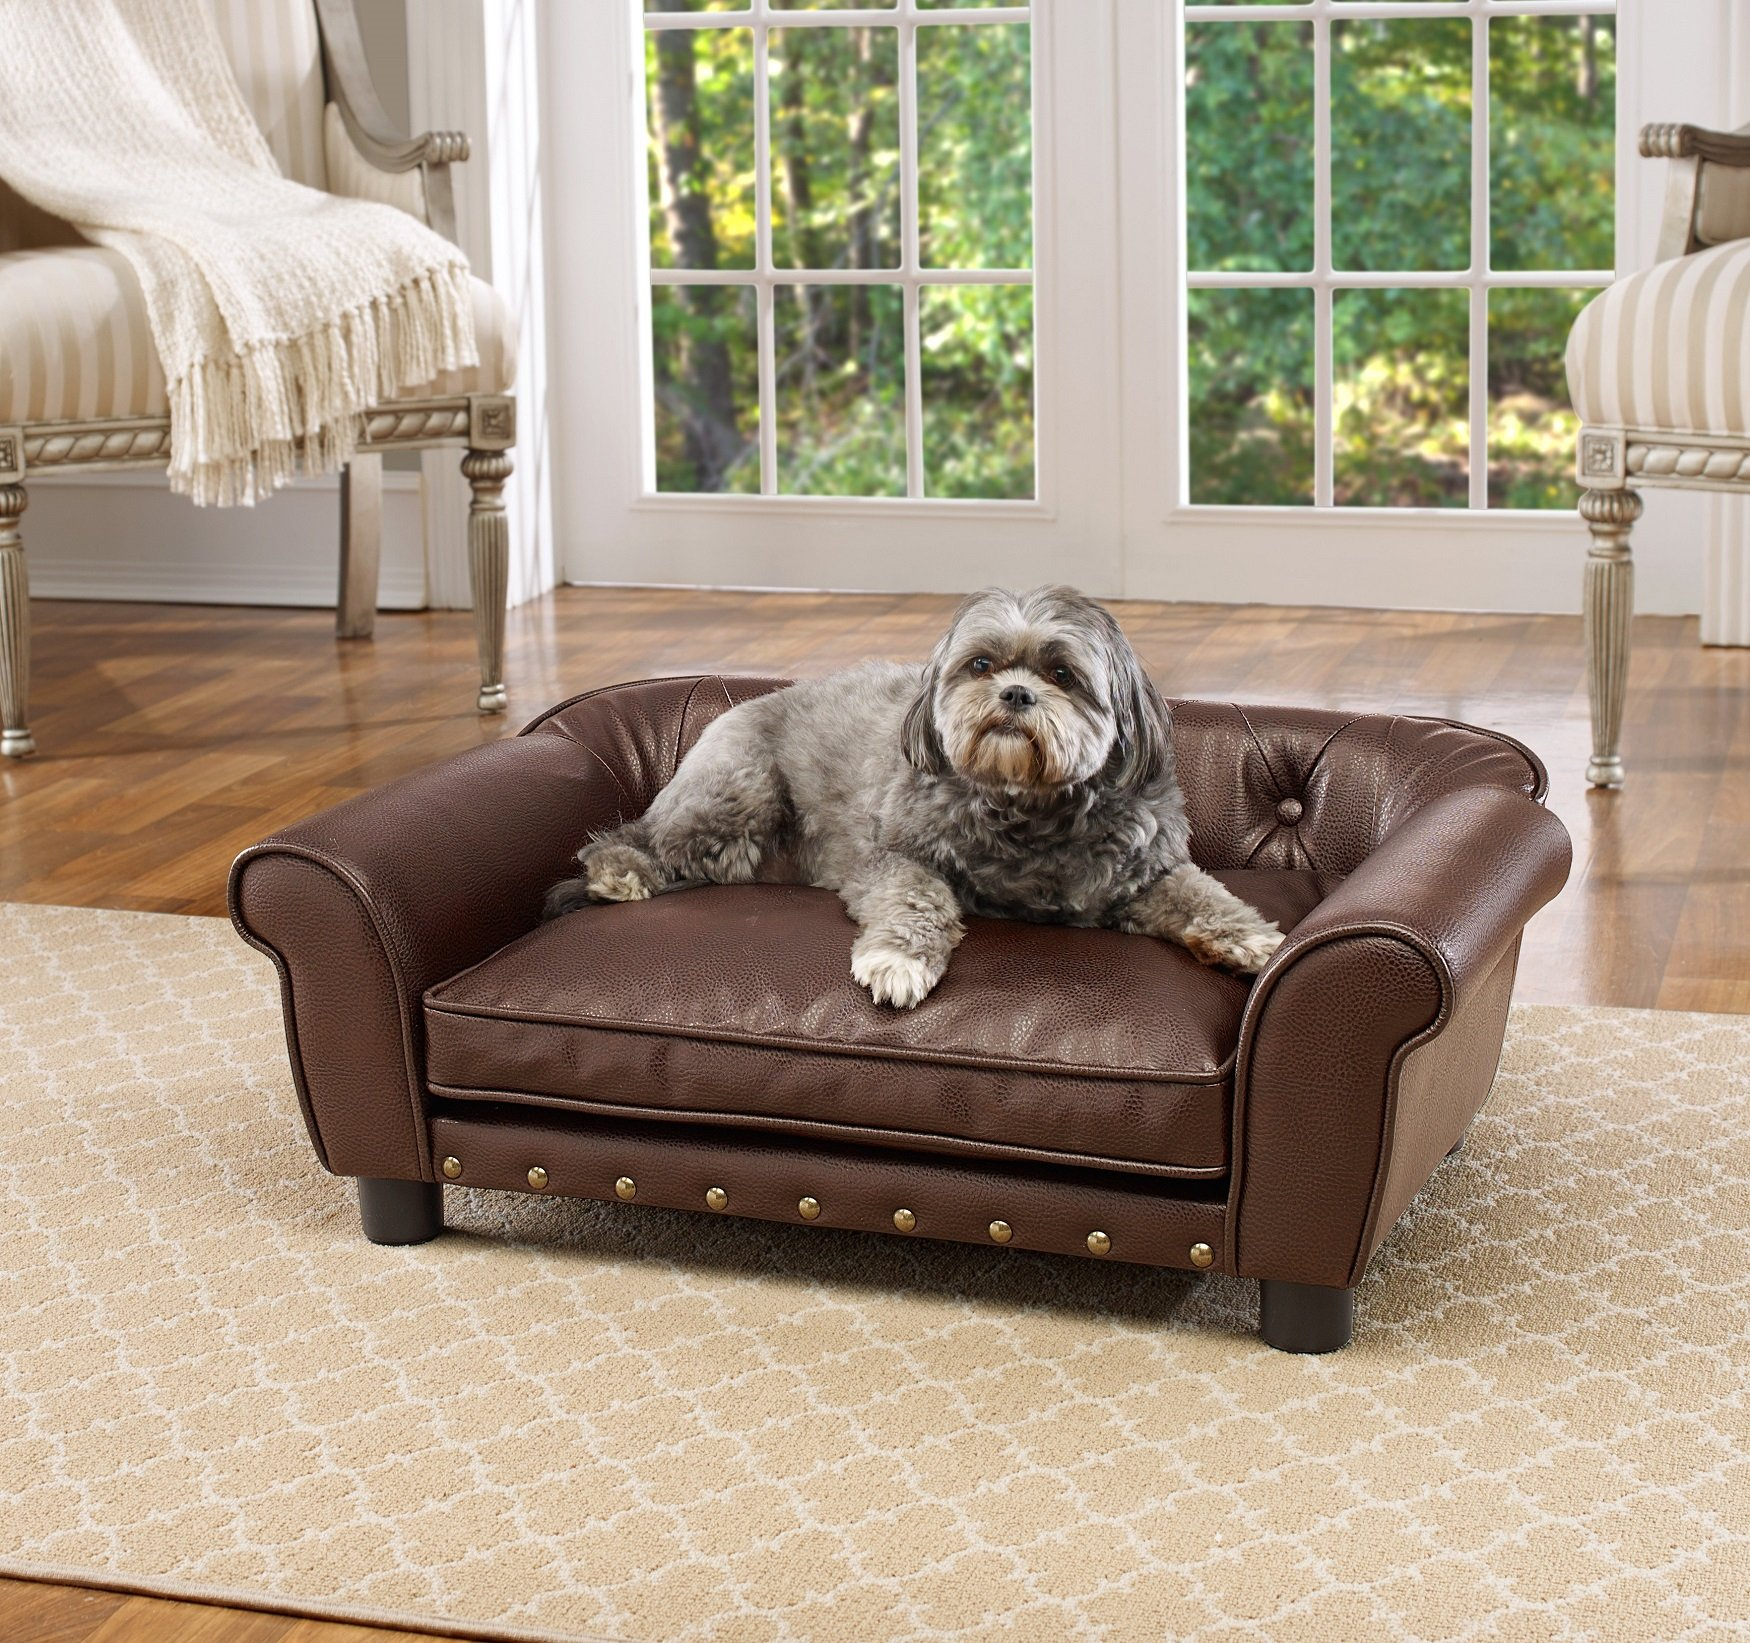 Enchanted Home Pet Brisbane Tufted Pet Bed by Enchanted Home Pet